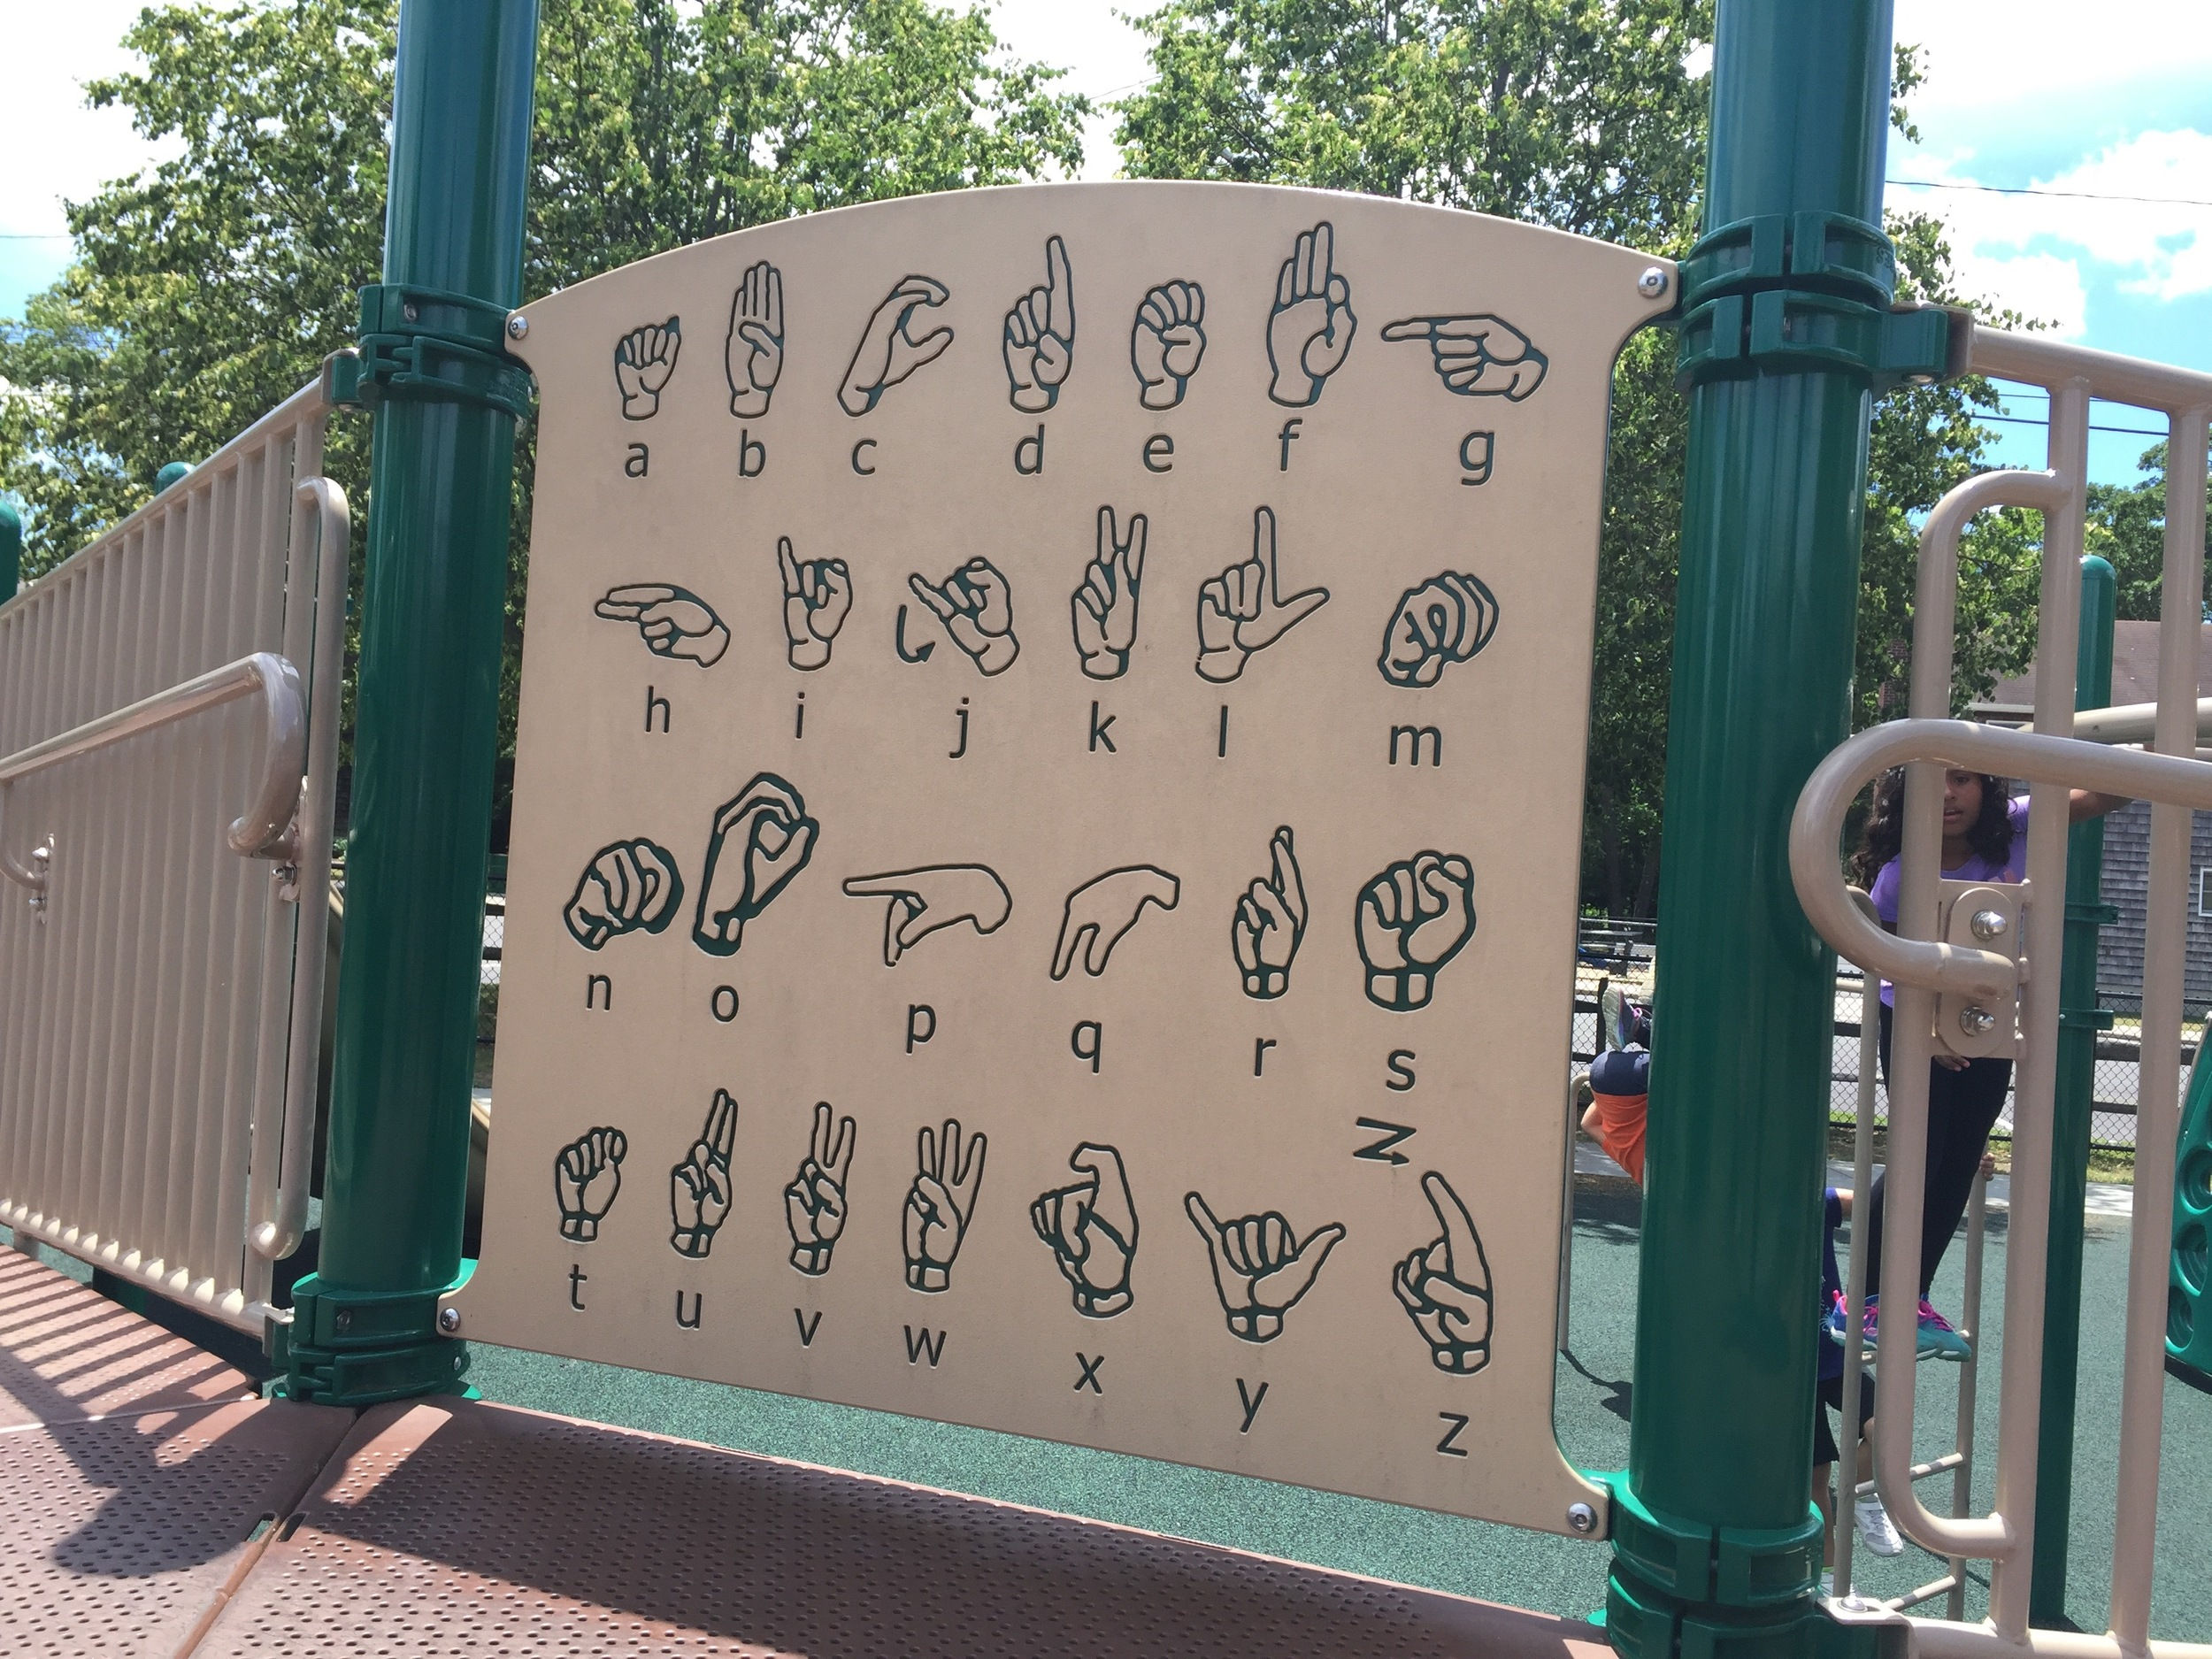 Sign language sign at Brookwood Hall Park